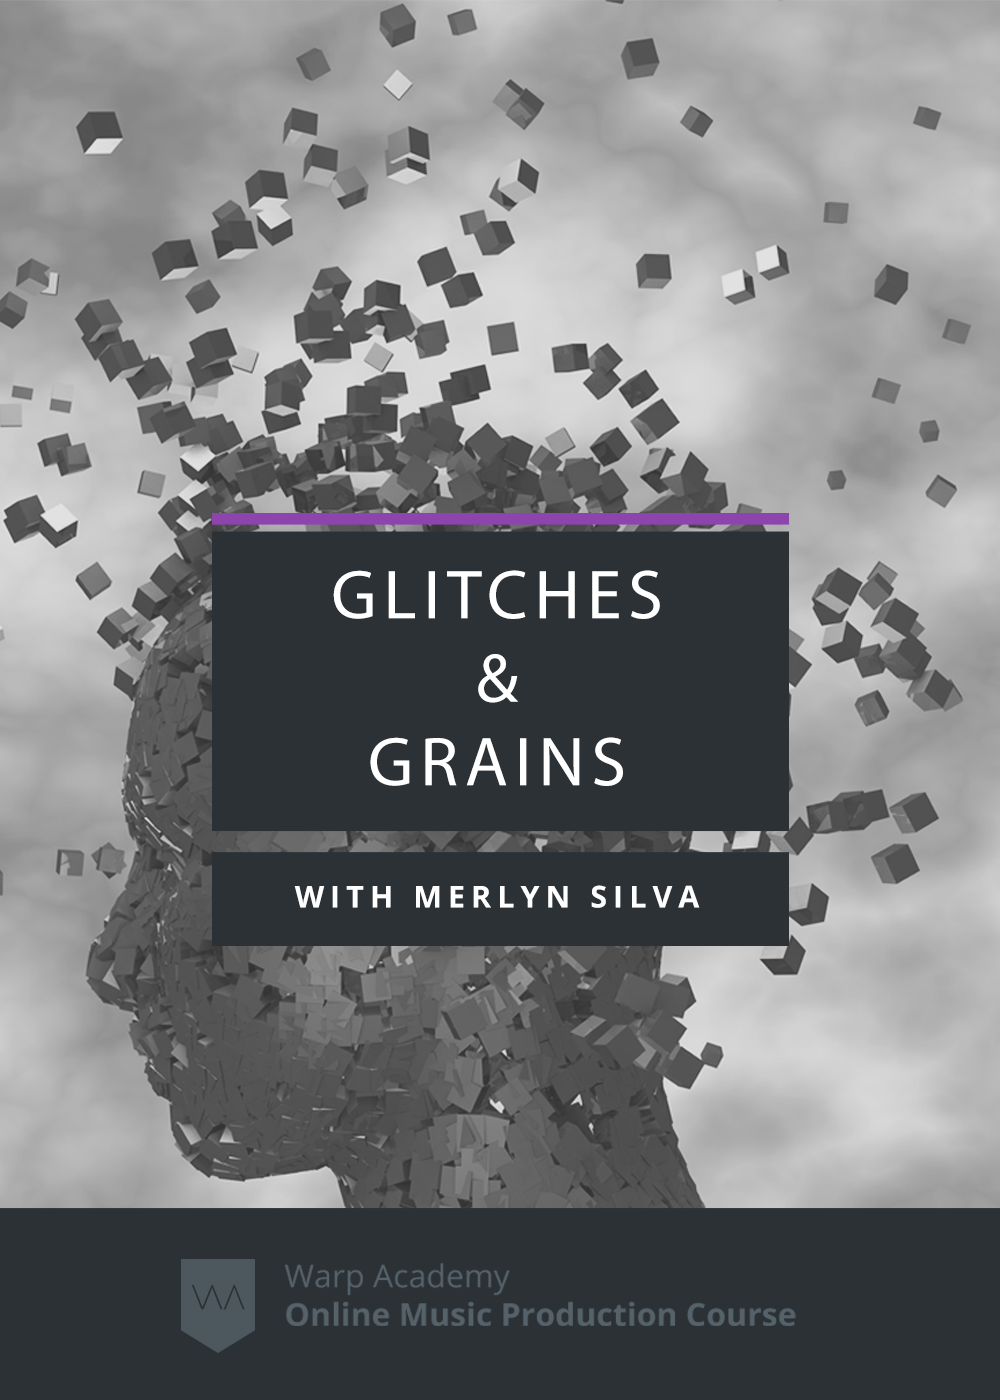 Glitches and Grains Product Page Image